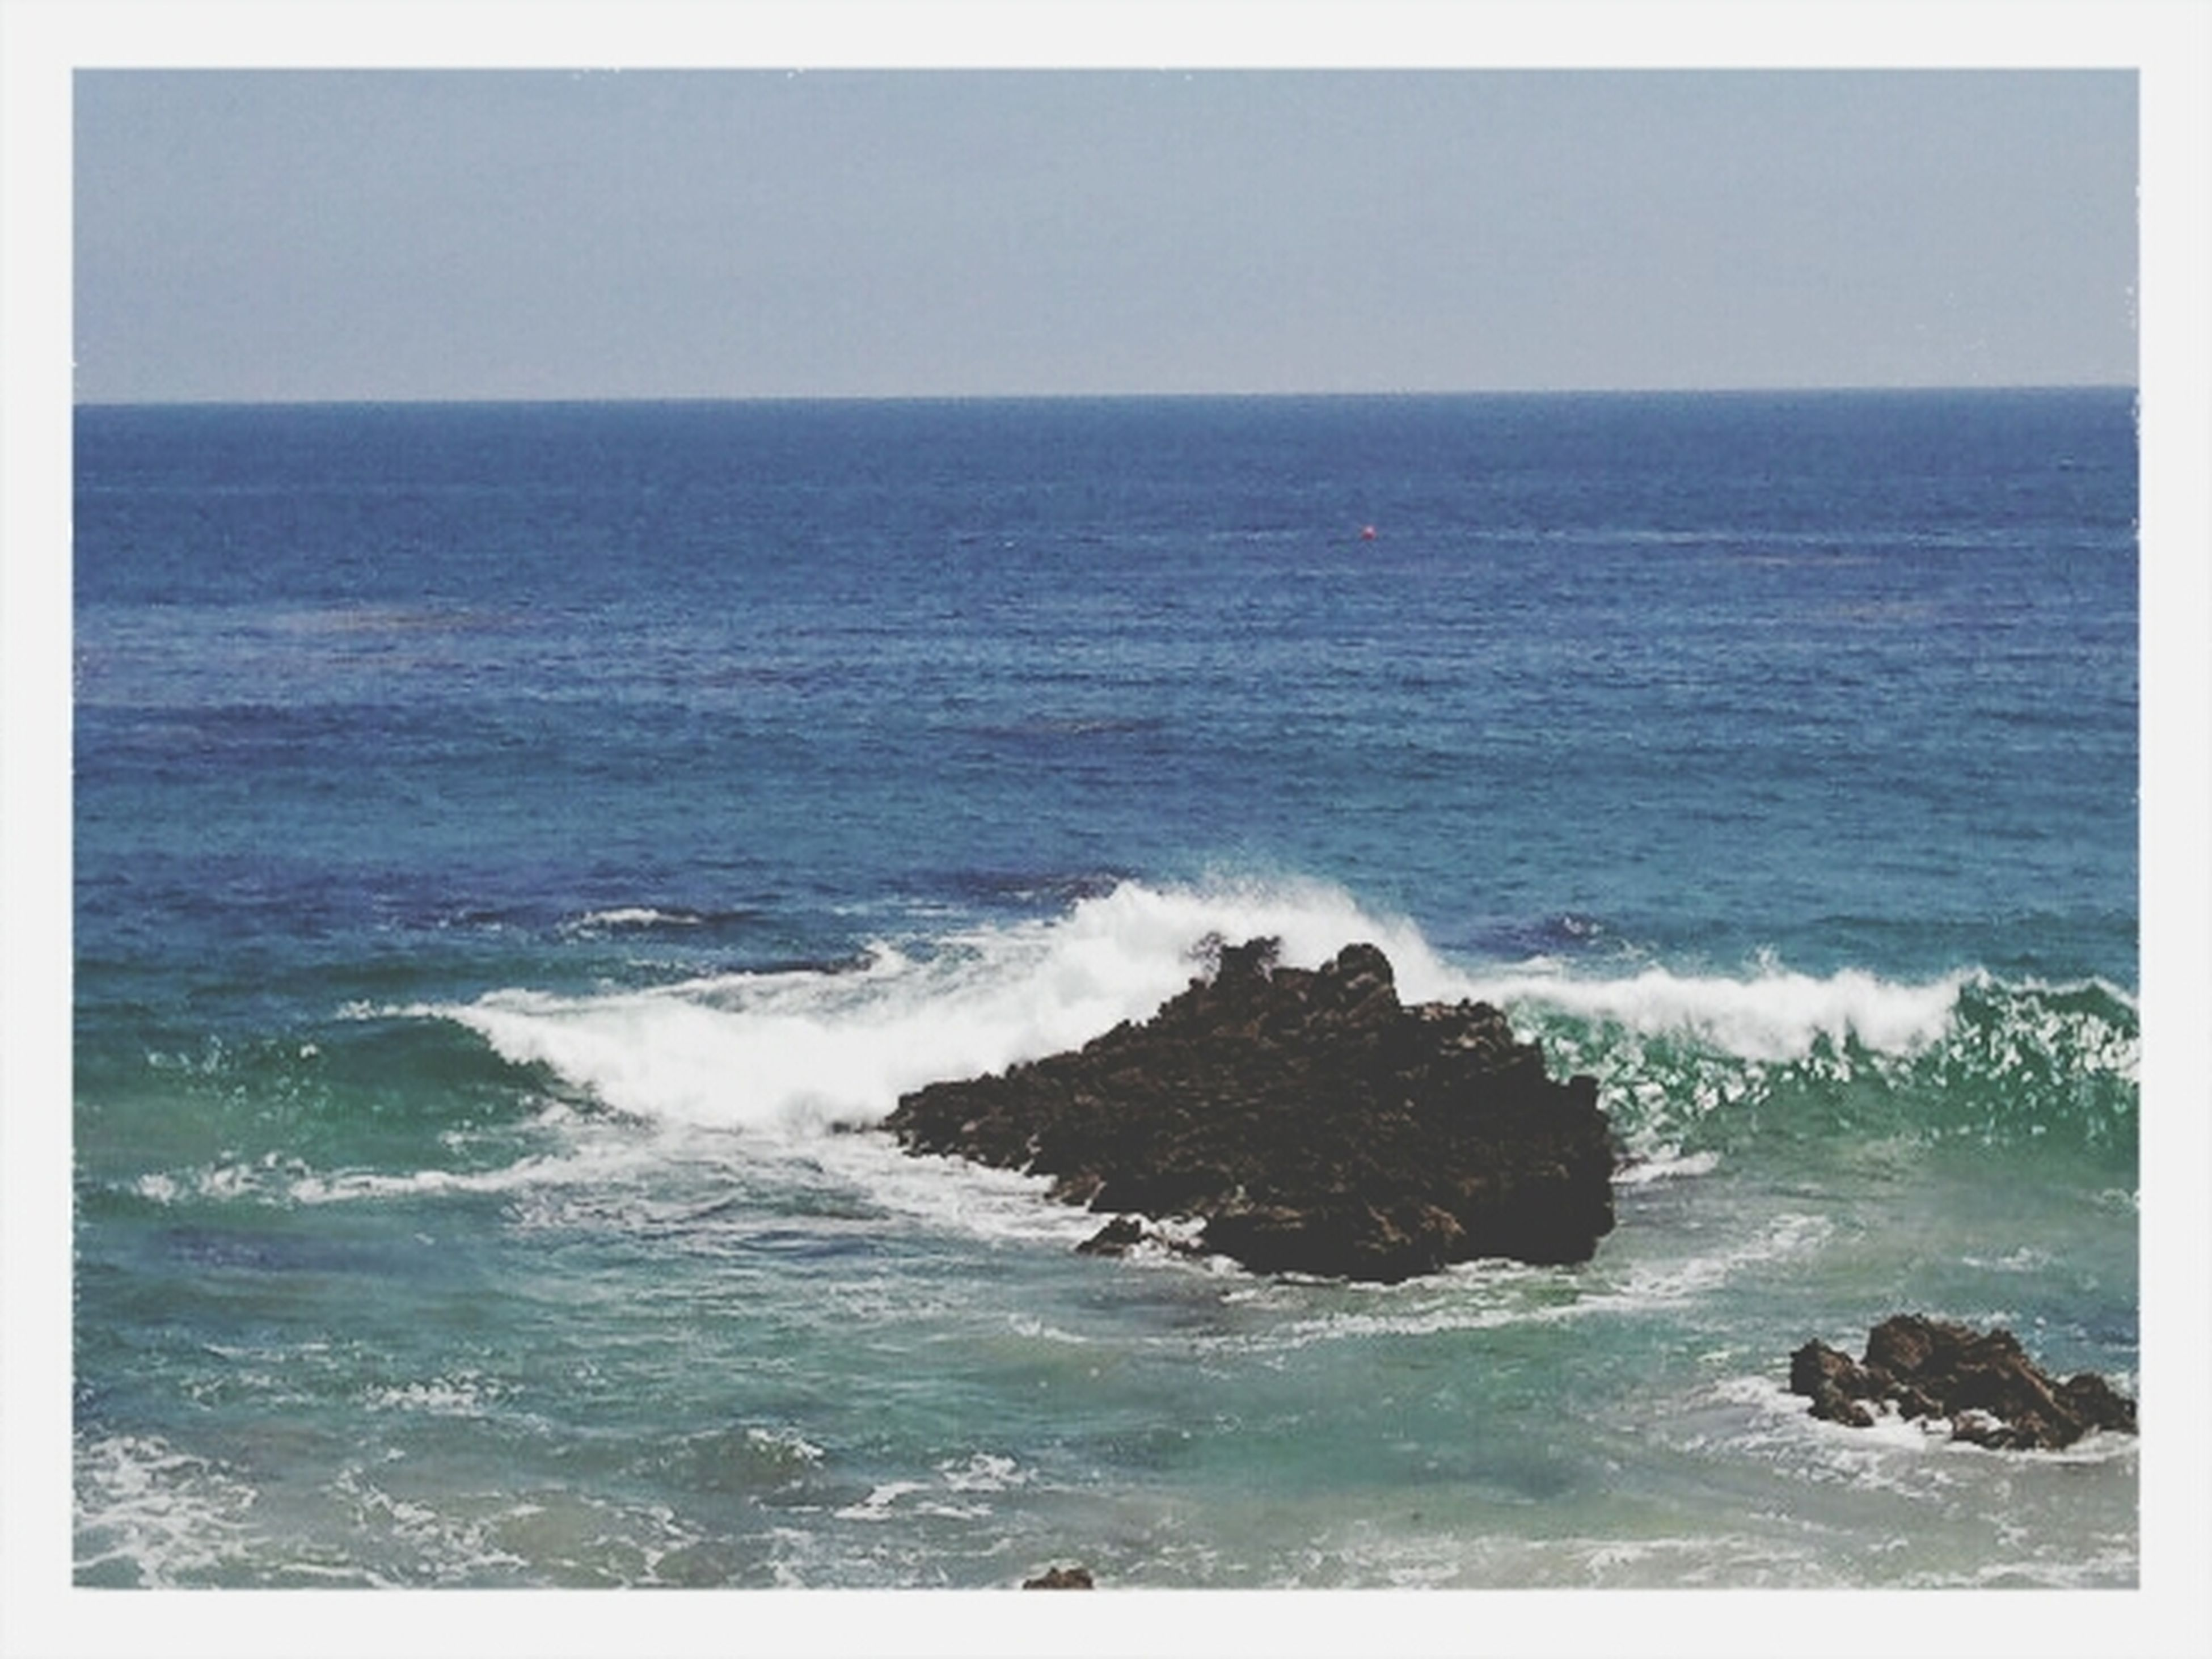 sea, water, horizon over water, transfer print, wave, scenics, beauty in nature, surf, tranquil scene, clear sky, nature, auto post production filter, tranquility, seascape, rock - object, idyllic, rock formation, beach, motion, shore